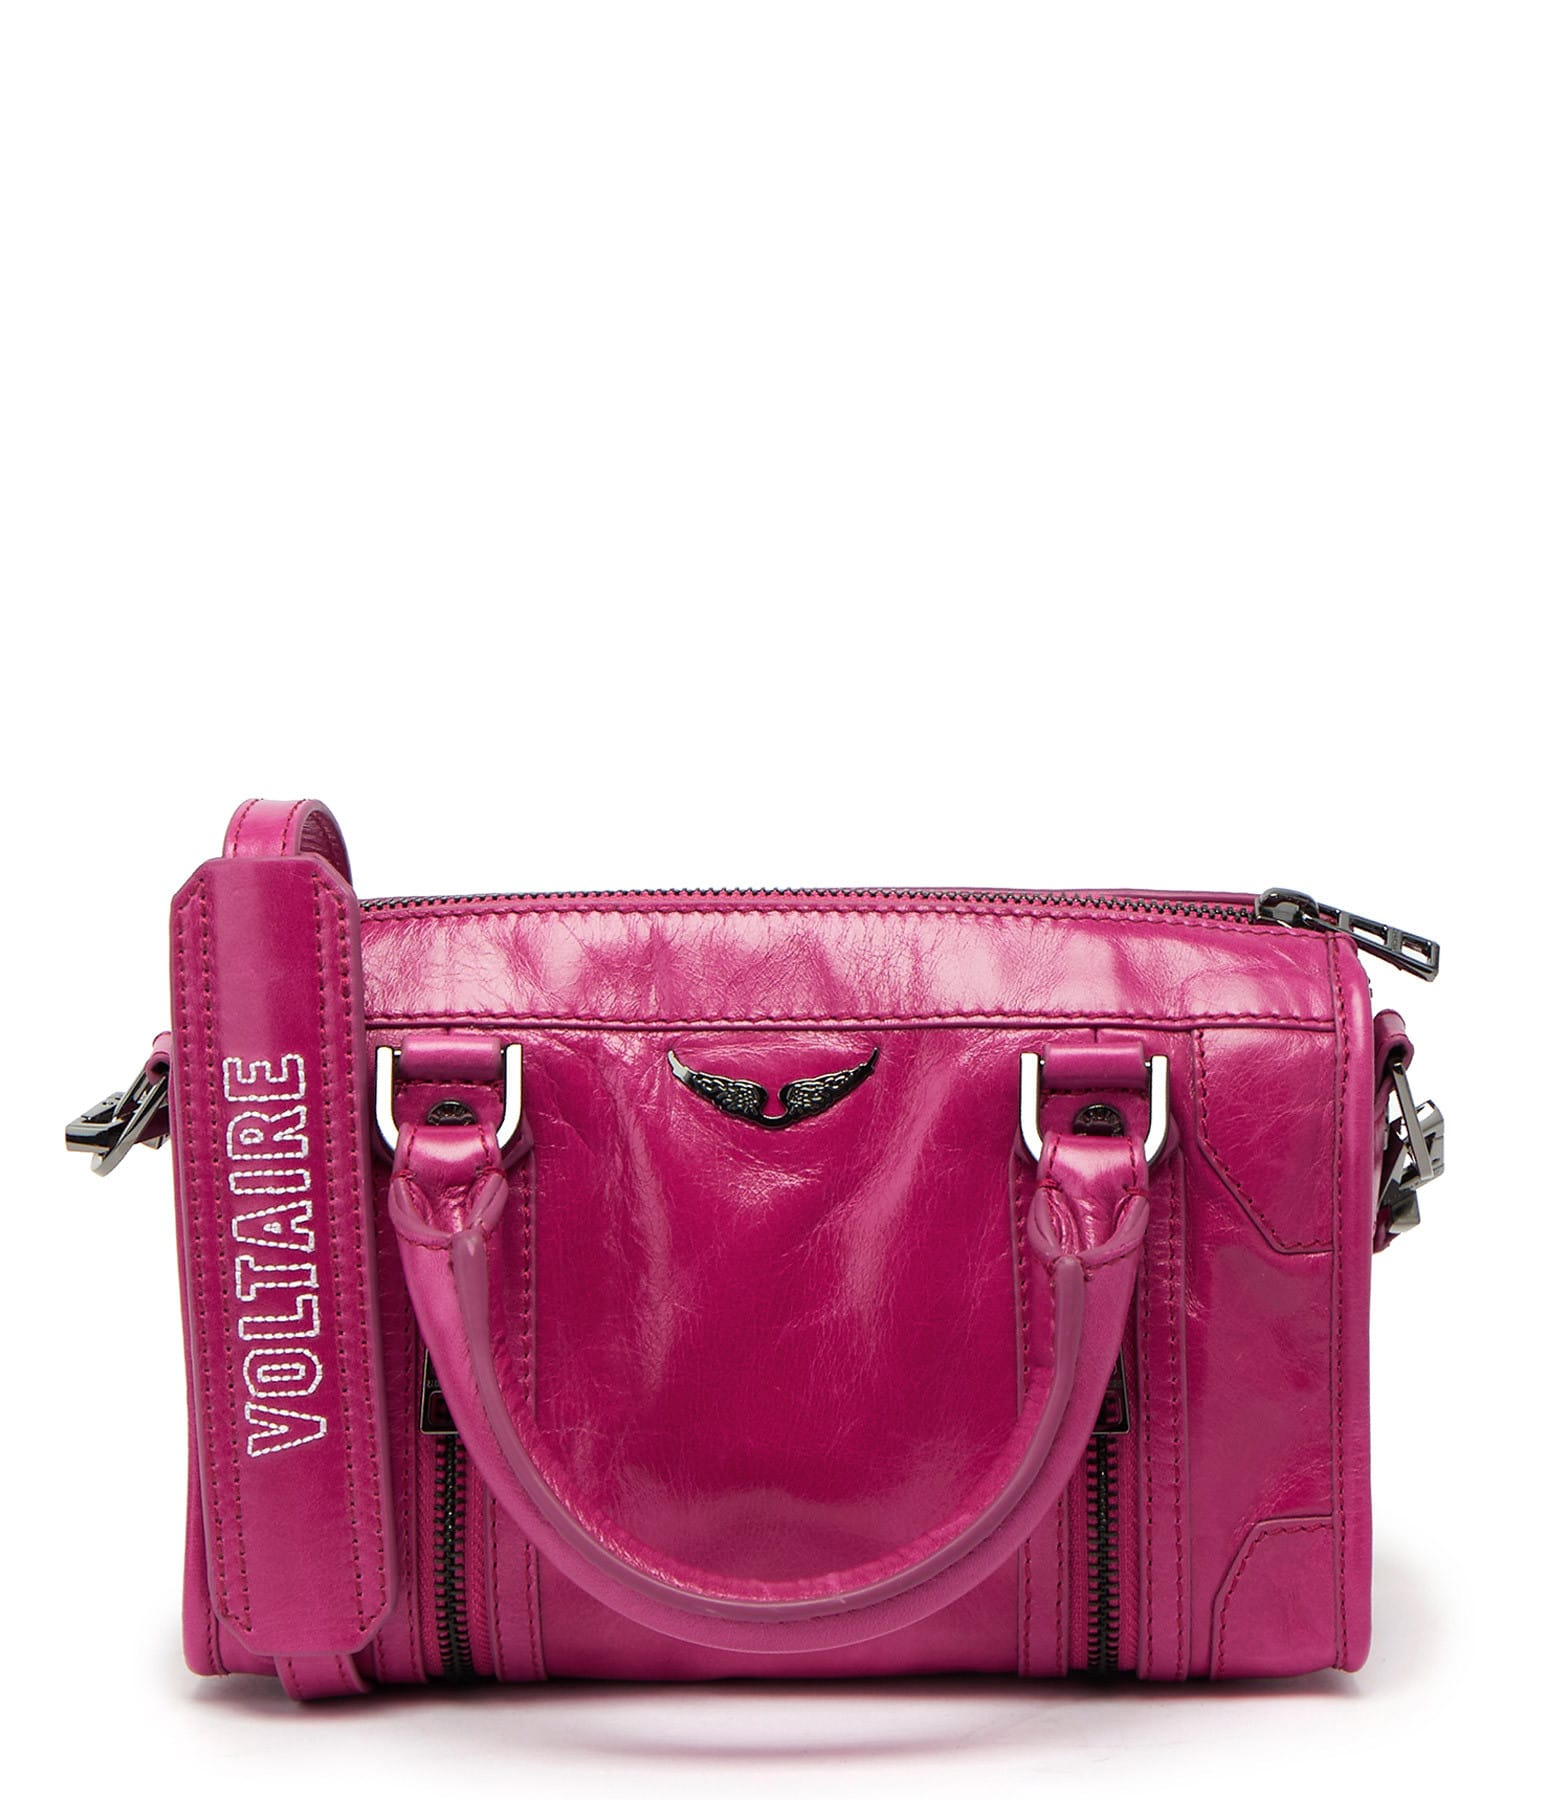 ZADIG & VOLTAIRE - Sac Sunny XS #2 Cuir Rose